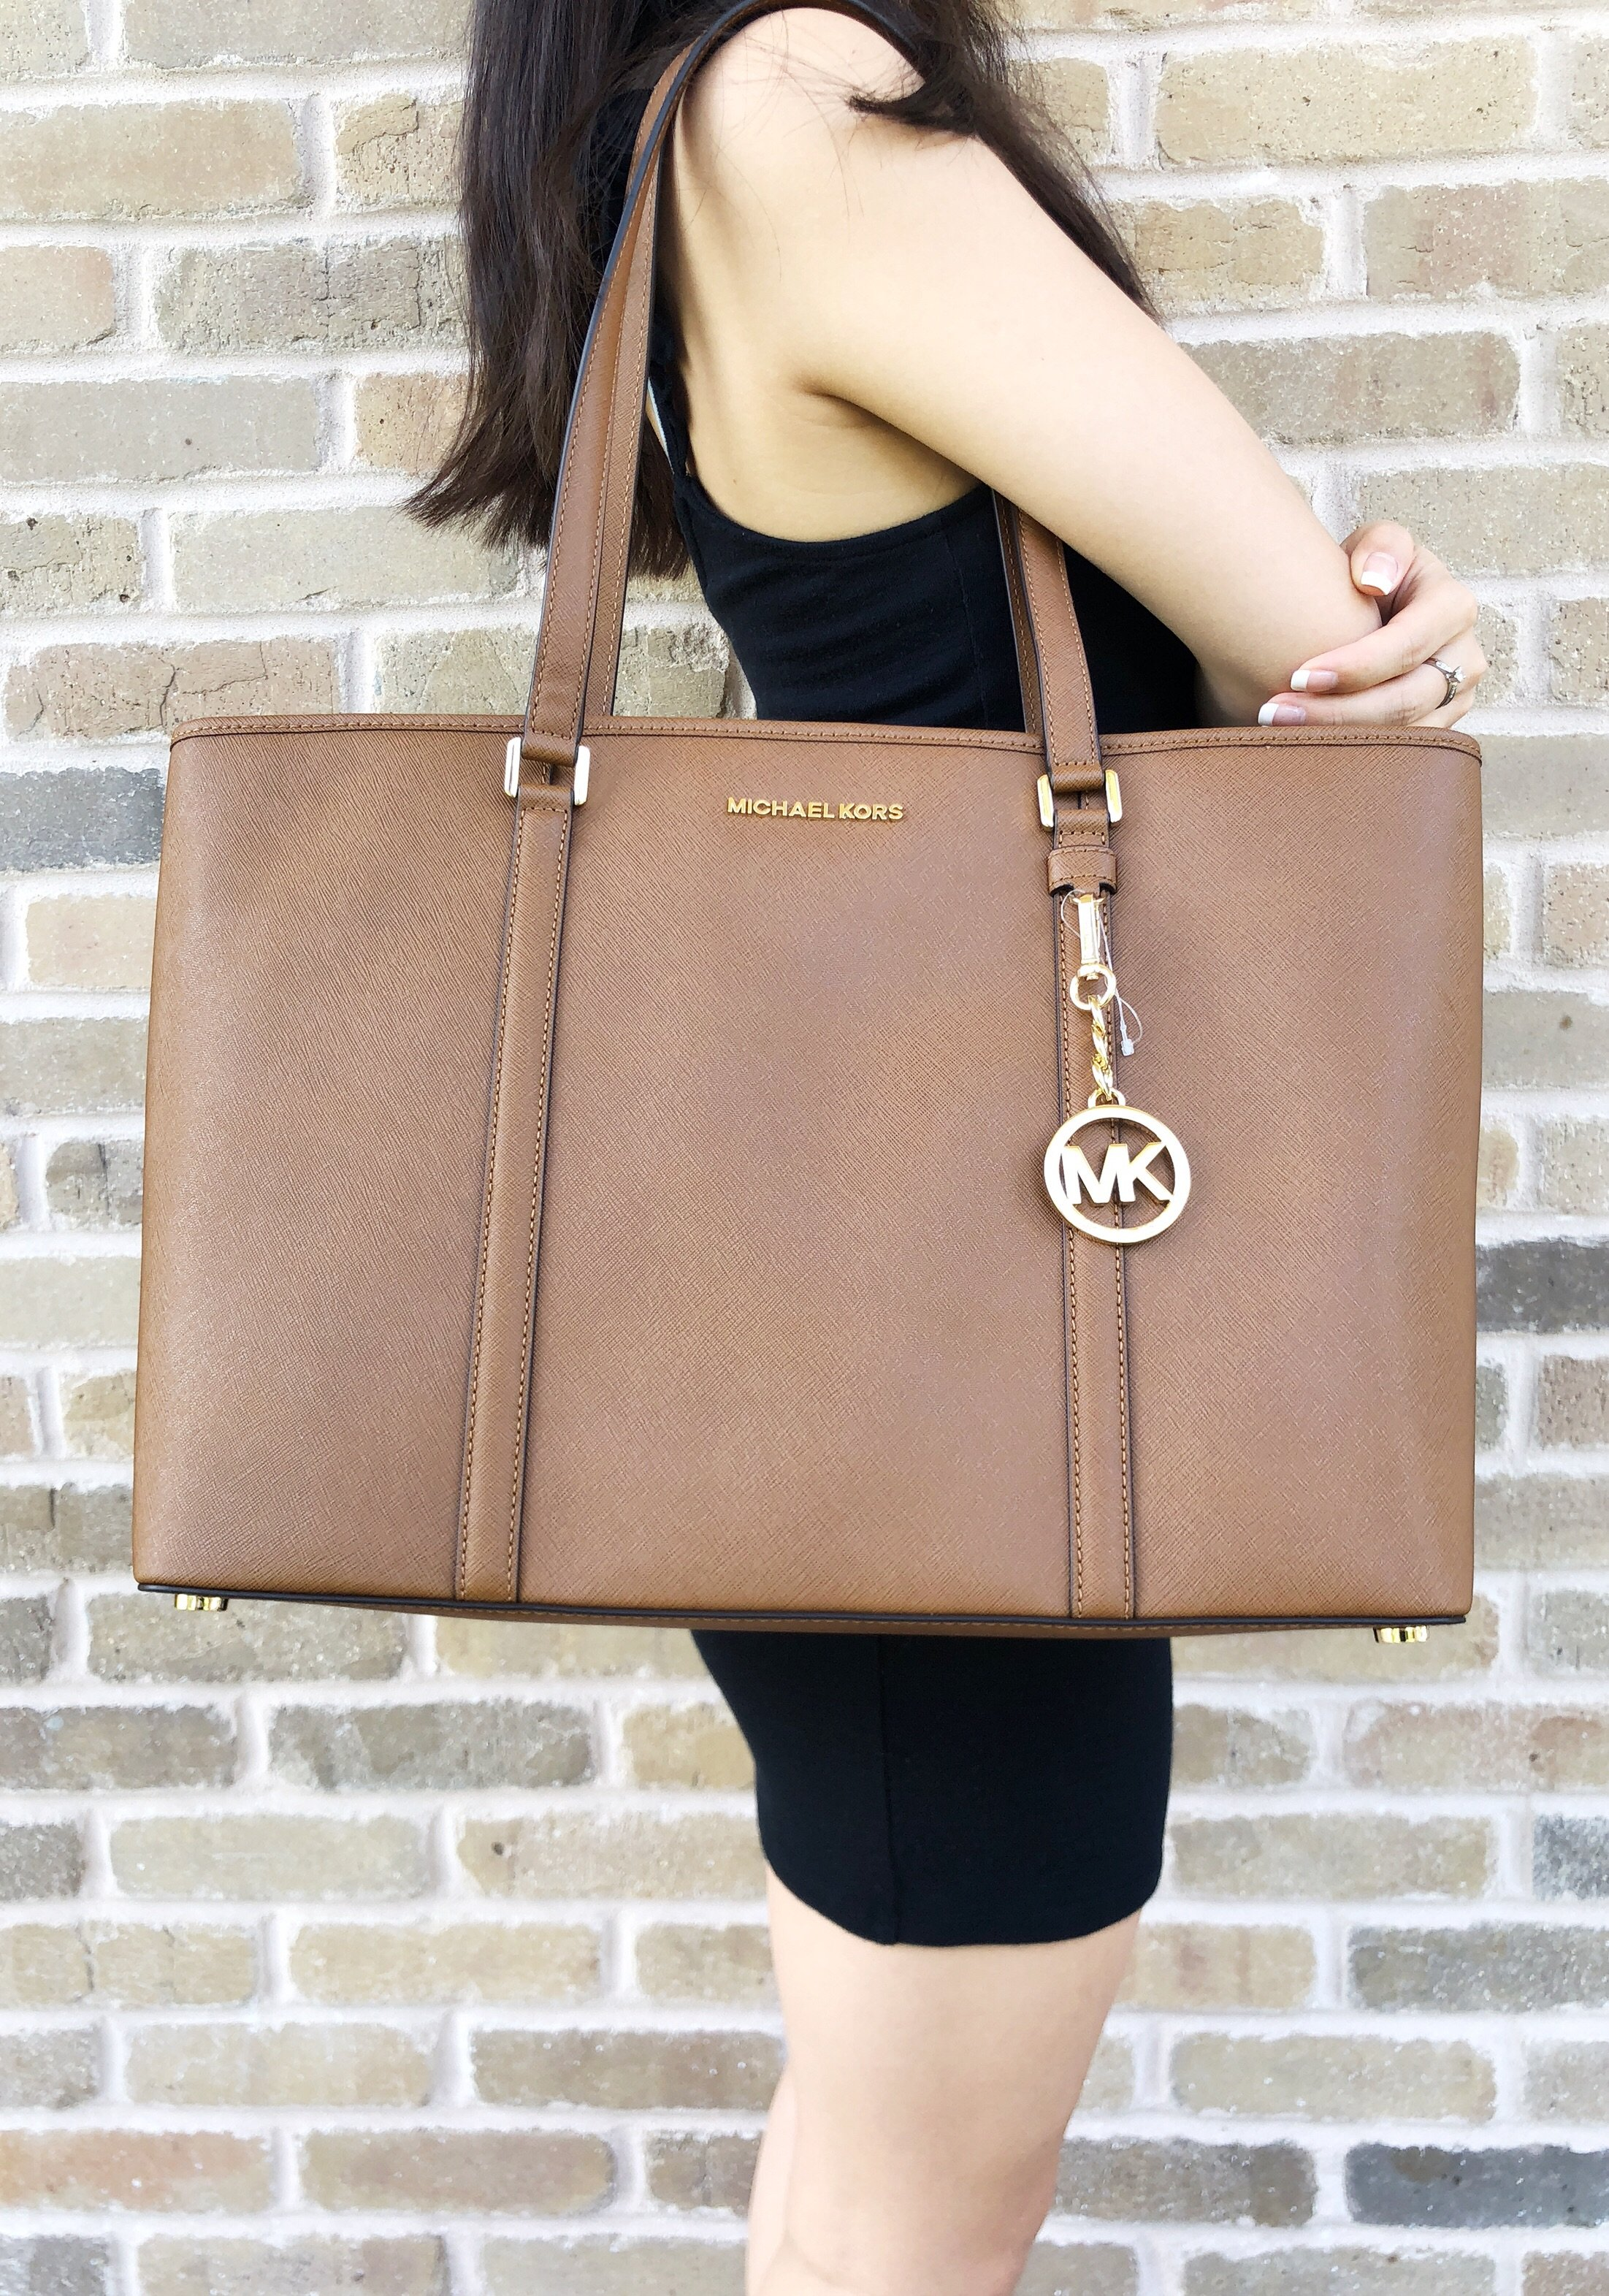 ed7a64e3fc5a71 Michael Kors Sady Large Multifunctional Top Zip tote Luggage Brown Laptop  Bag